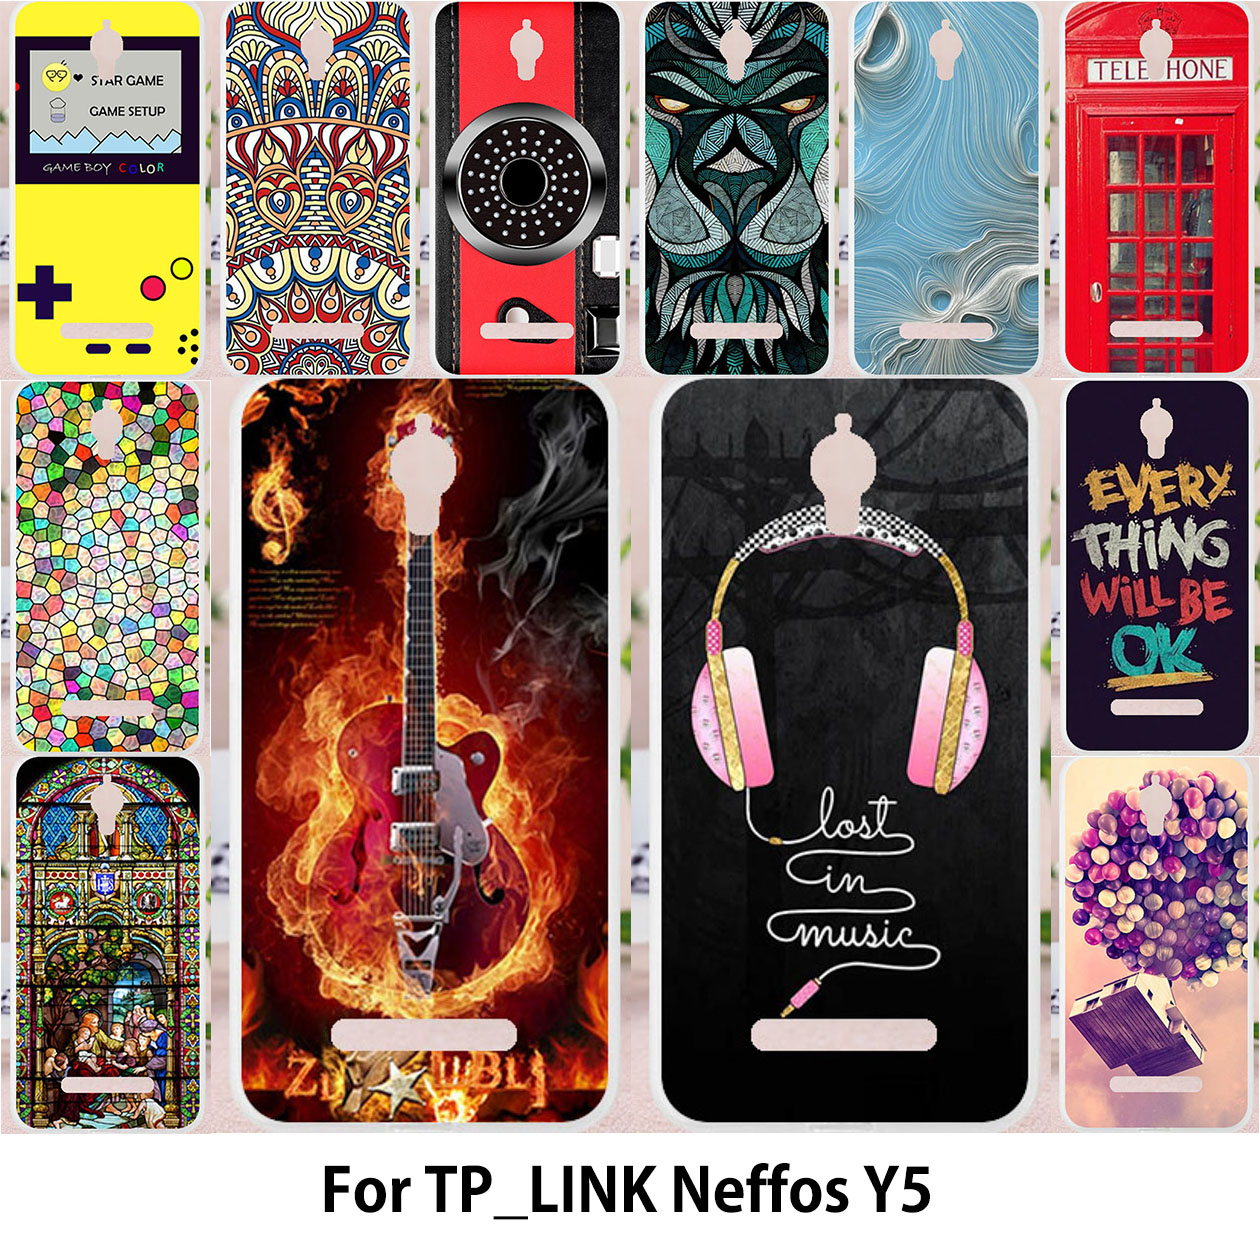 TAOYUNXI For TP-LINK Neffos Y5 cases Silicon Case For TPLINK Neffos Y5 tp link TP802A Co ...